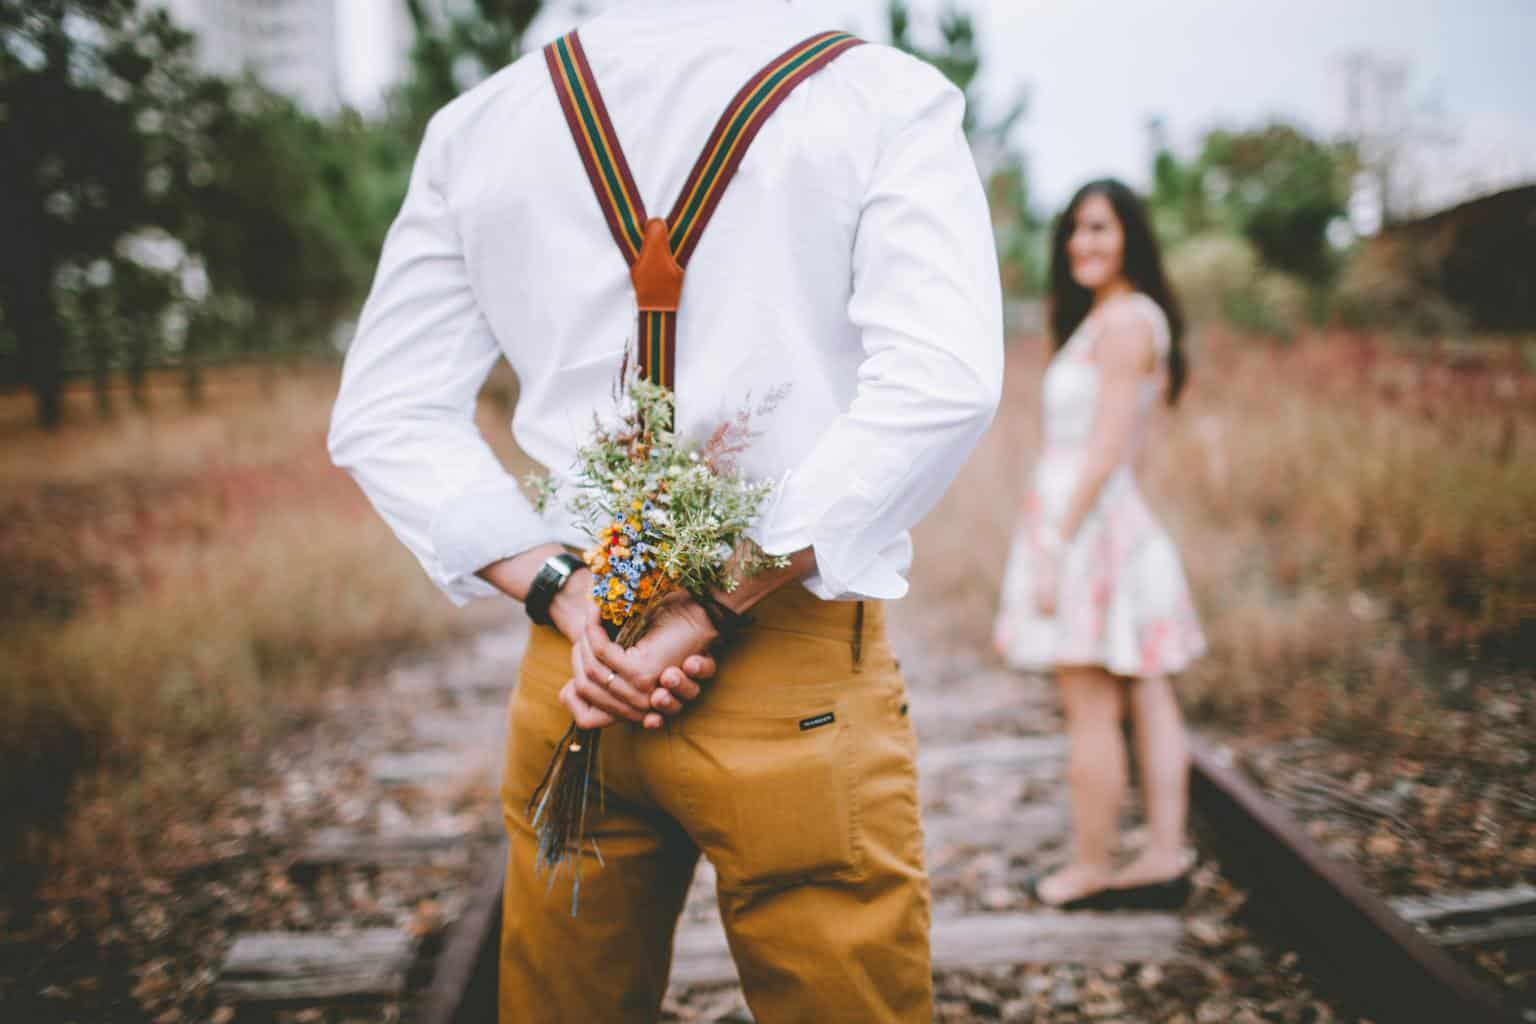 husband hiding flowers behind his back for his wife